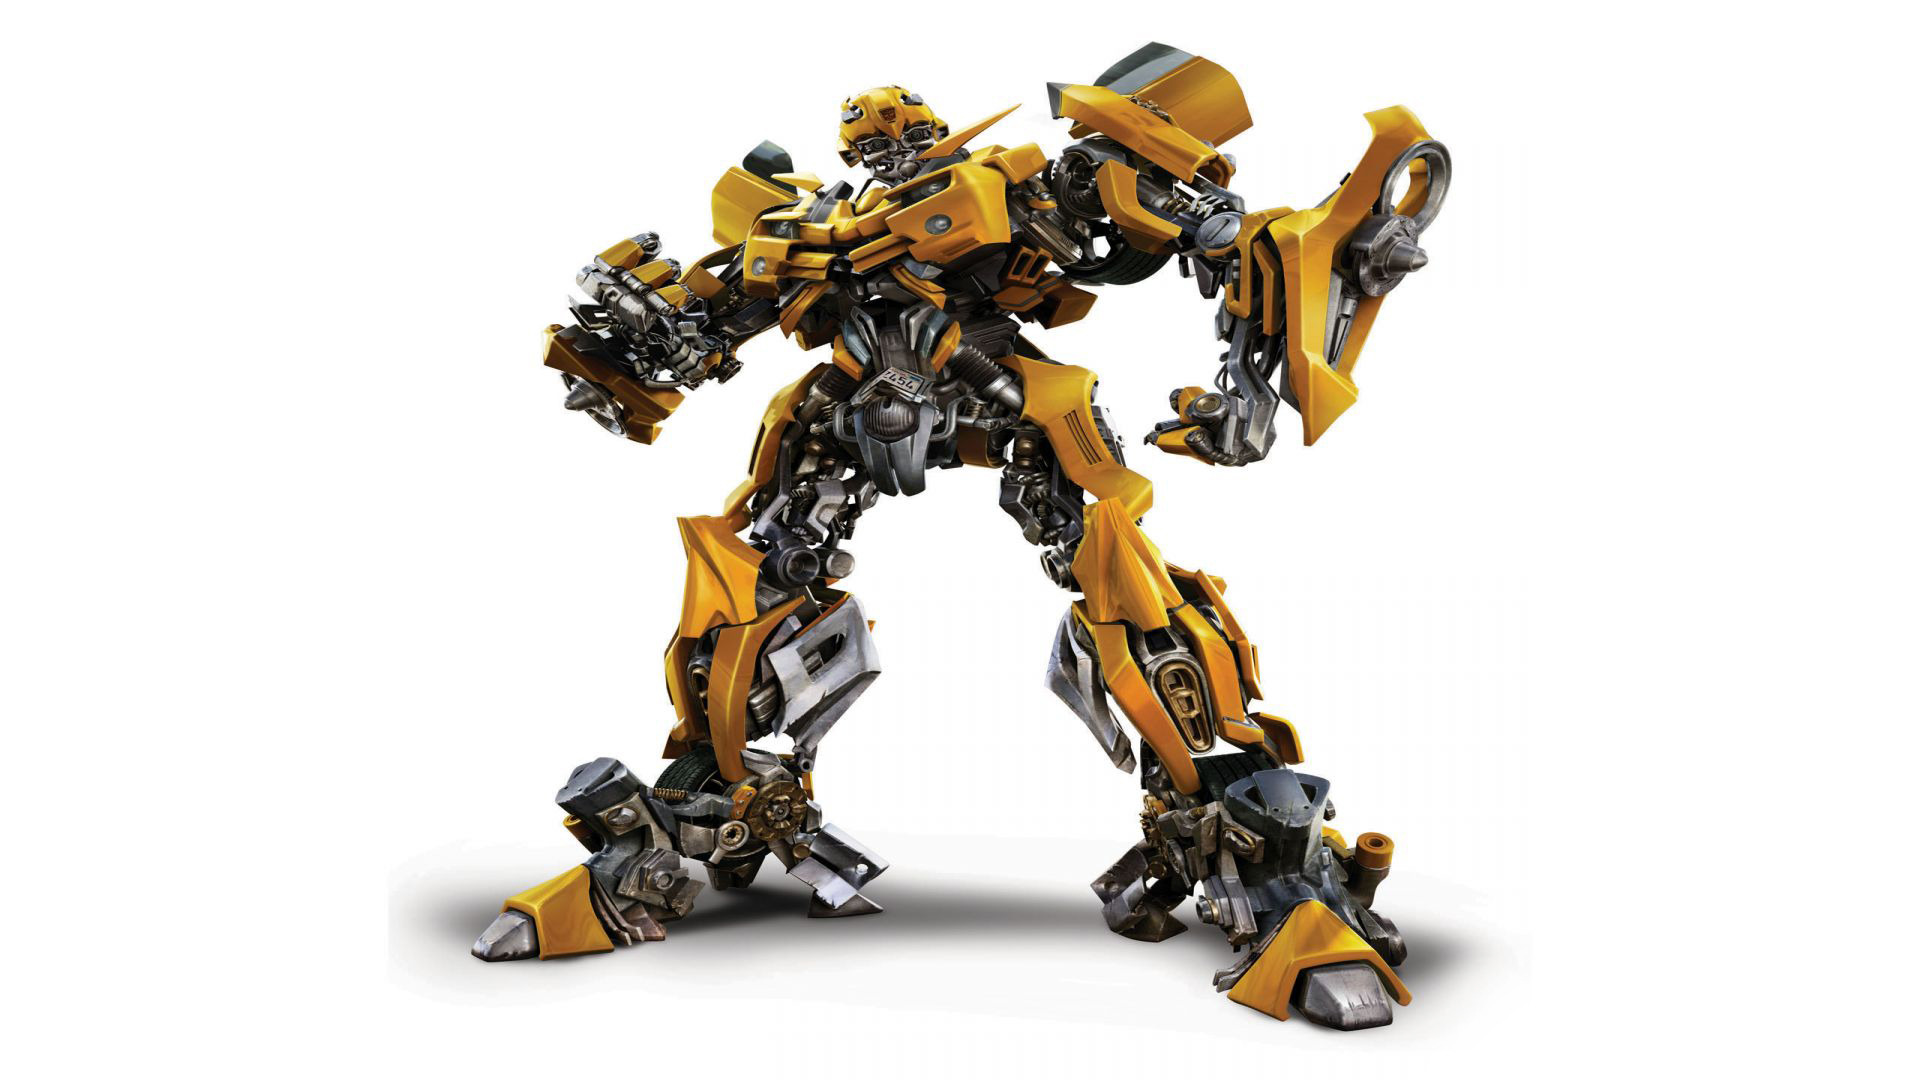 Hd transformers 4 clip art